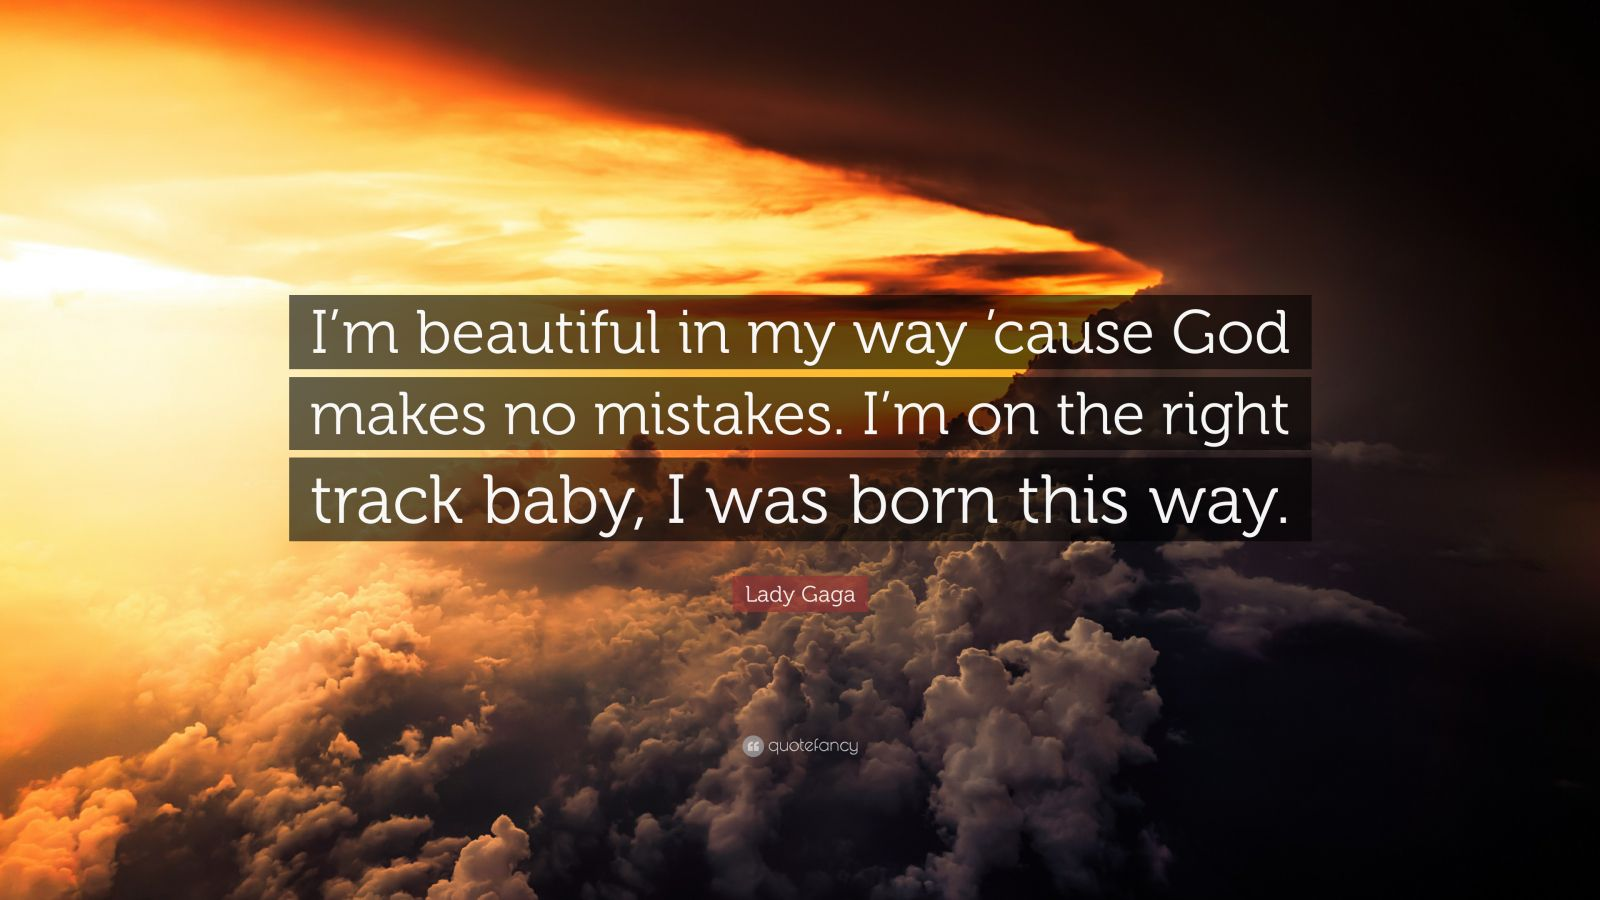 """Lady Gaga Quote: """"I'm beautiful in my way 'cause God makes no mistakes. I'm on the right track baby, I was born this way."""""""